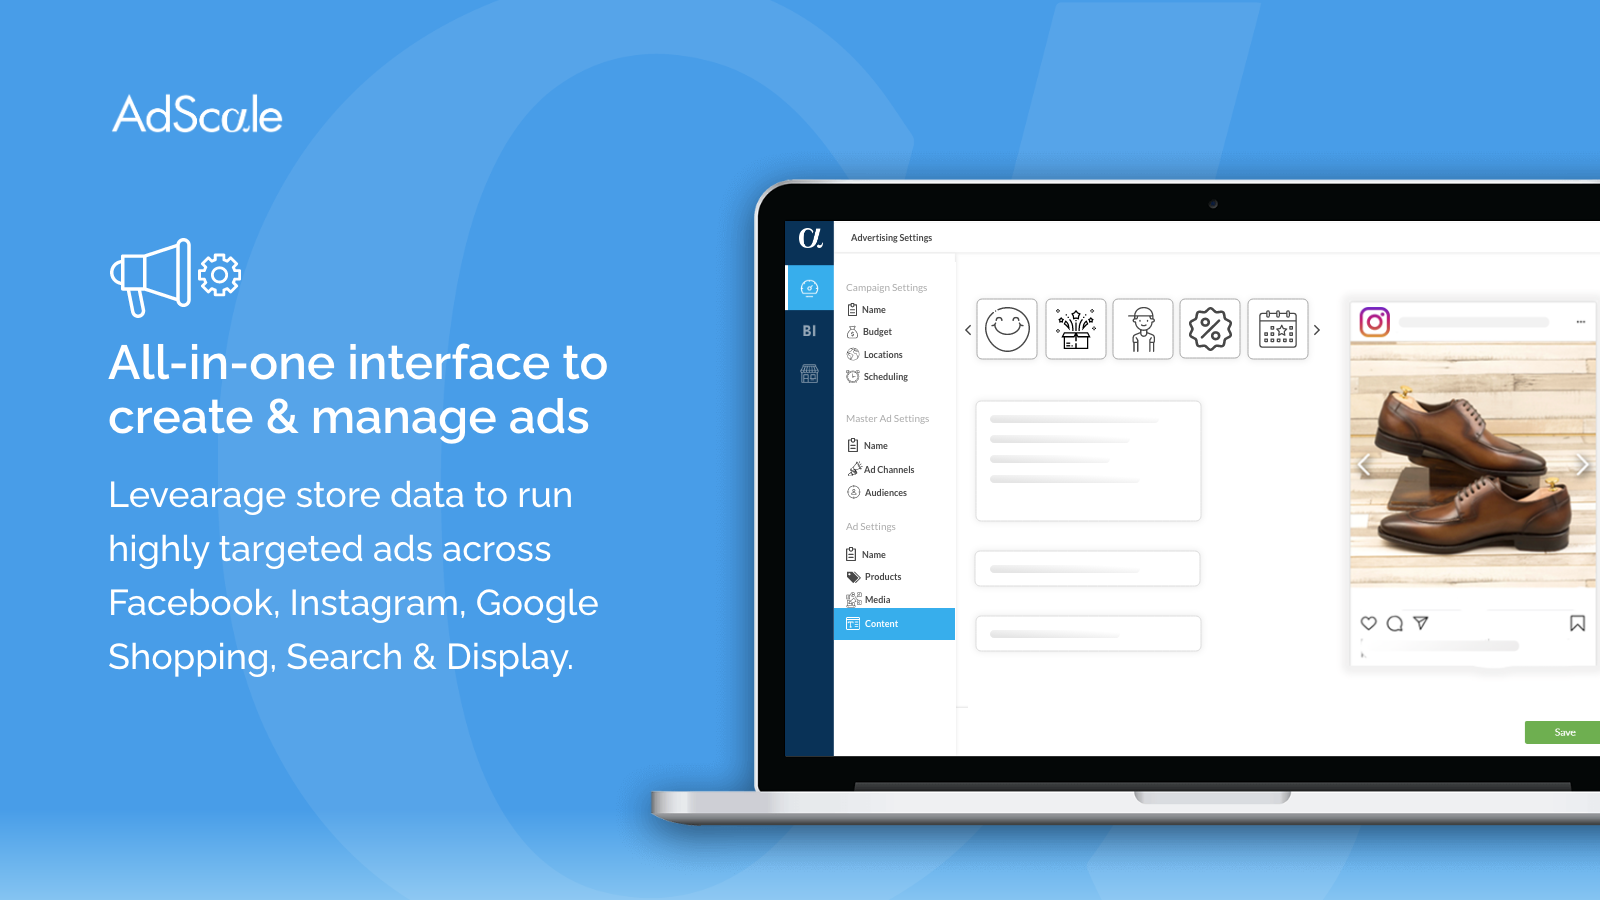 All in one platform to create & manage ads on Google & Facebook